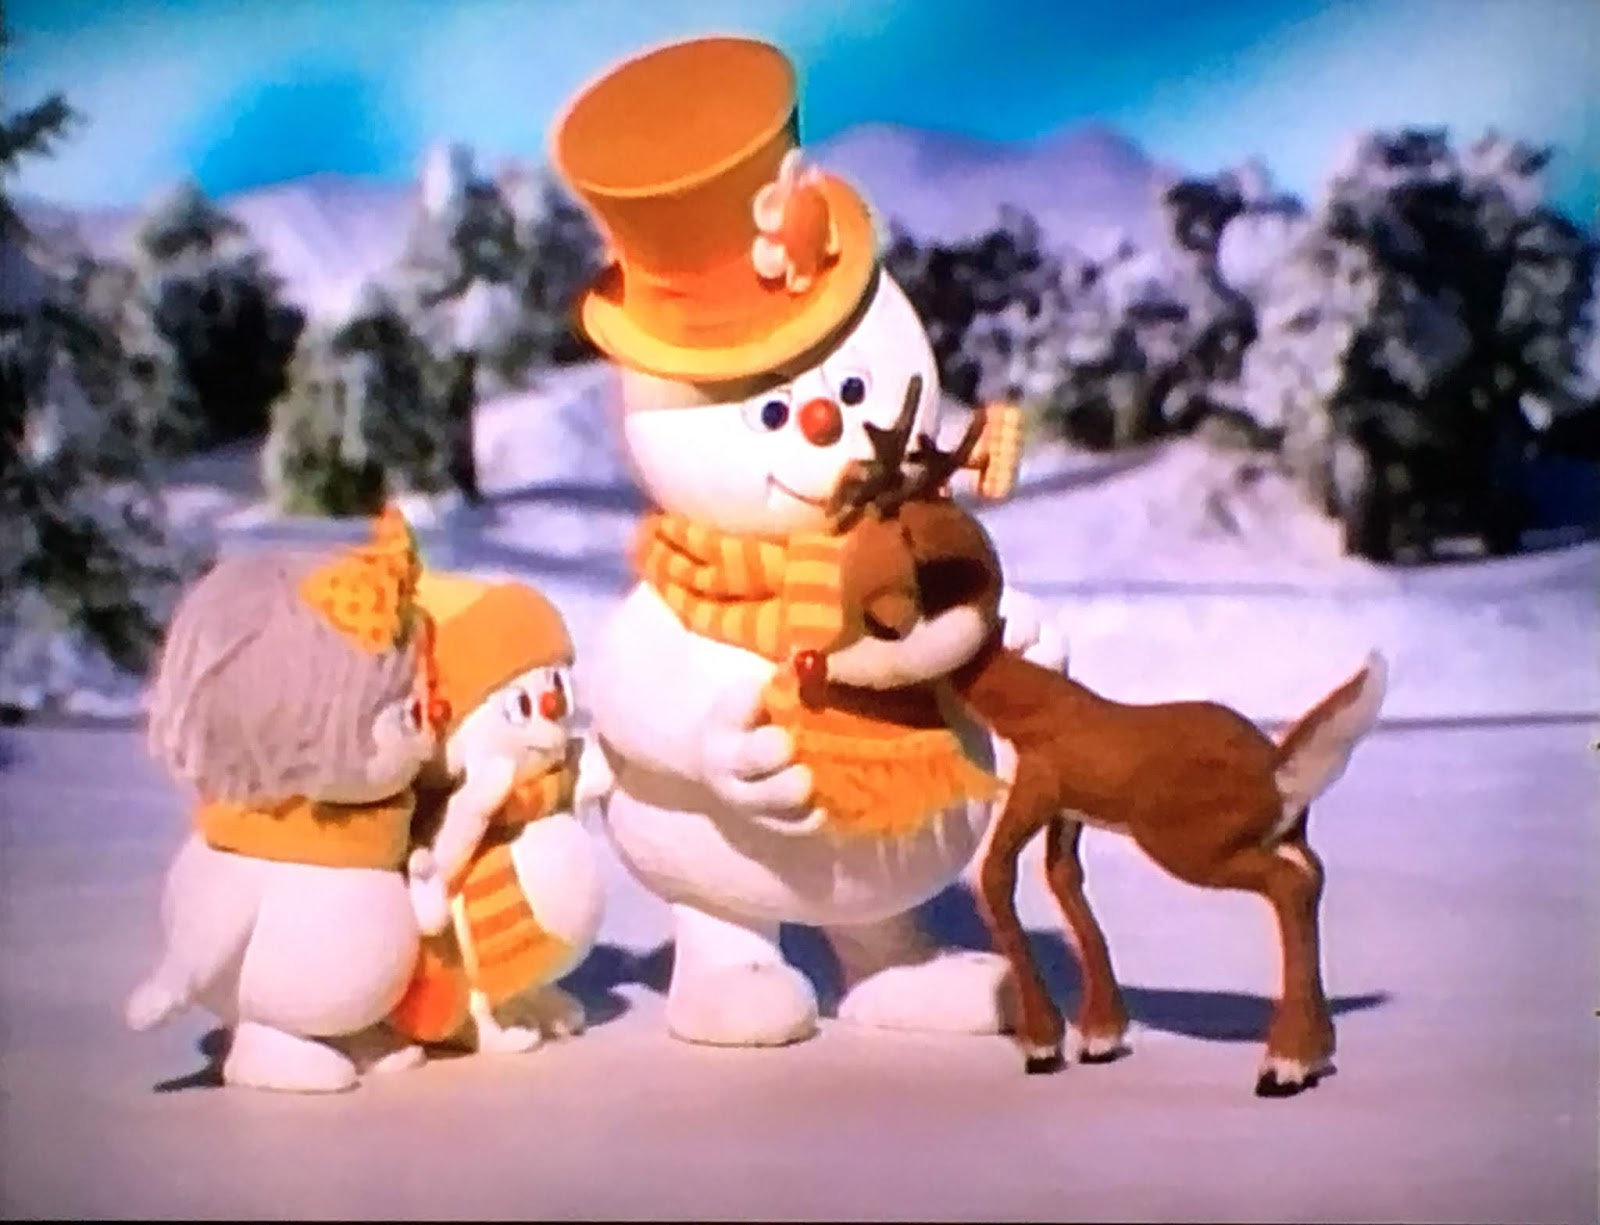 Rudolph And Frostys Christmas In July Dvd.Cereal At Midnight Pop Culture In Analog Rudolph And